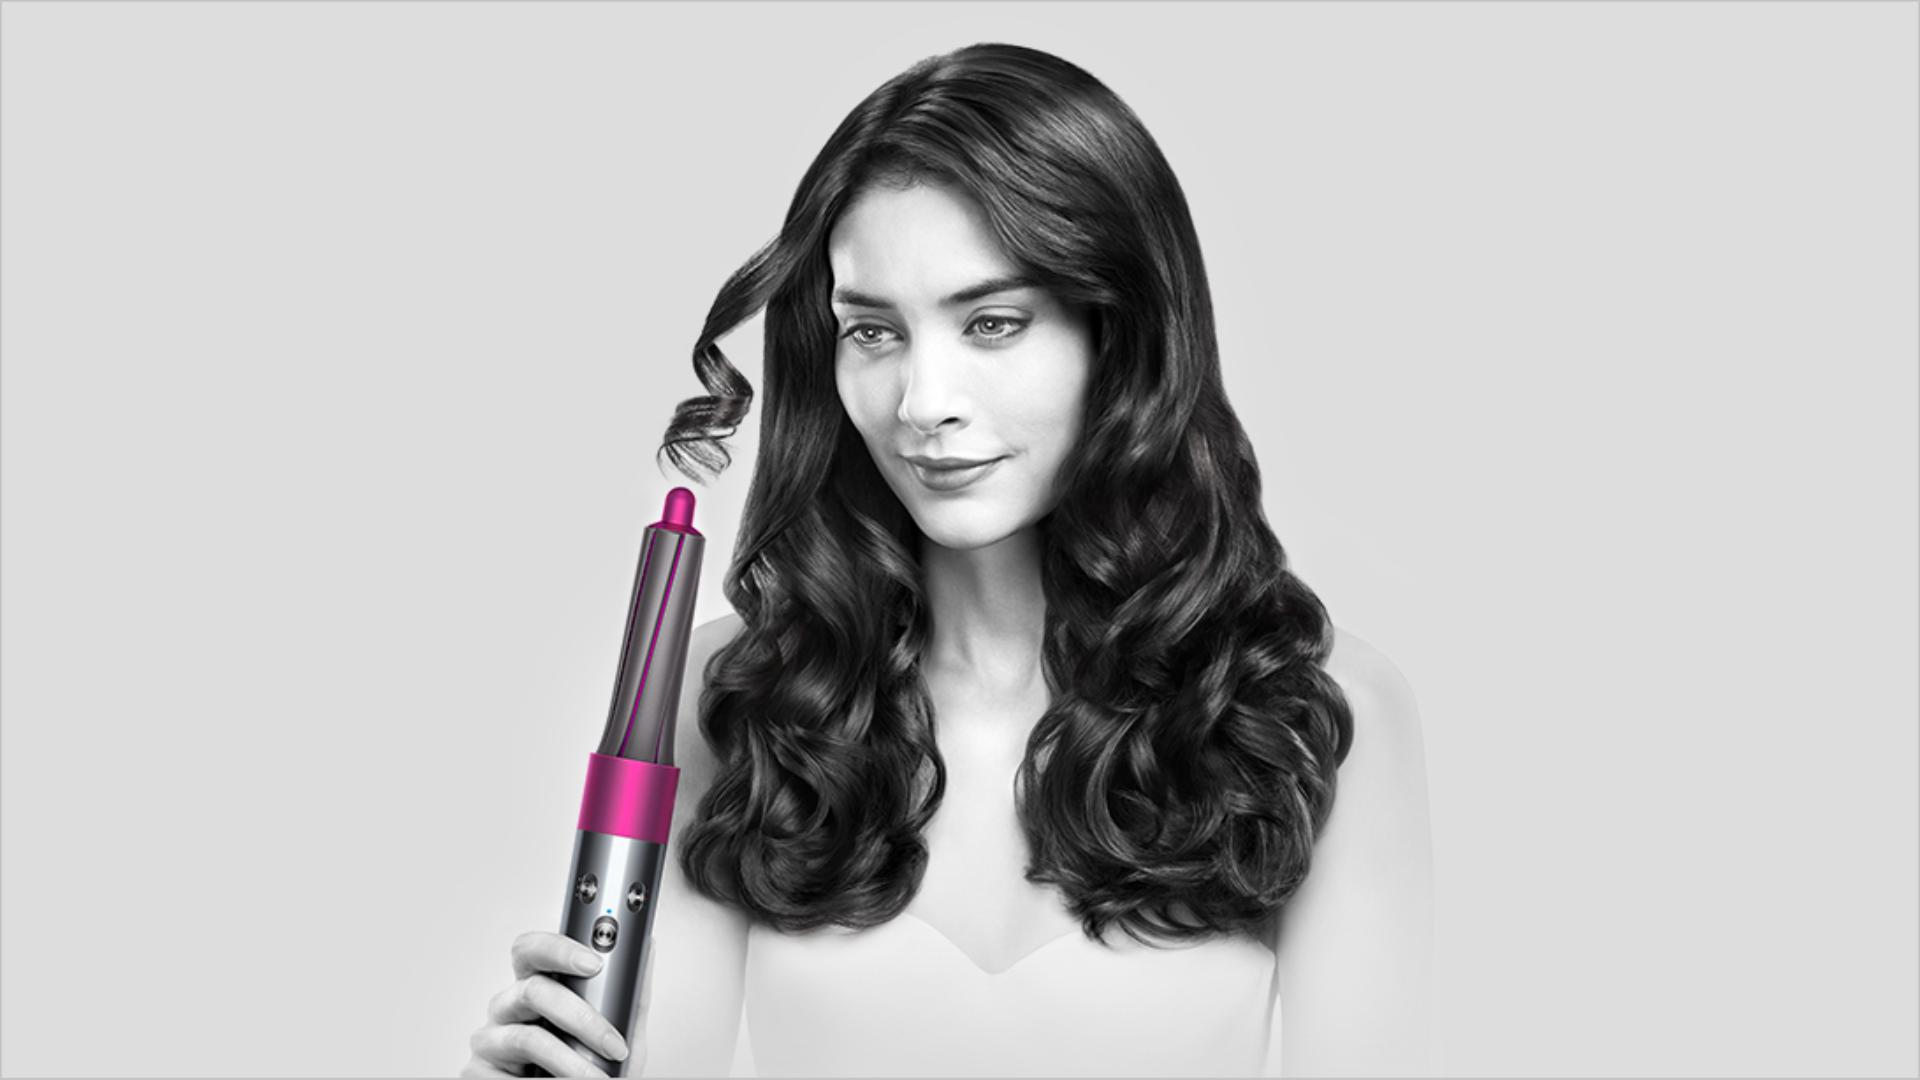 A model using the Dyson Airwrap styler